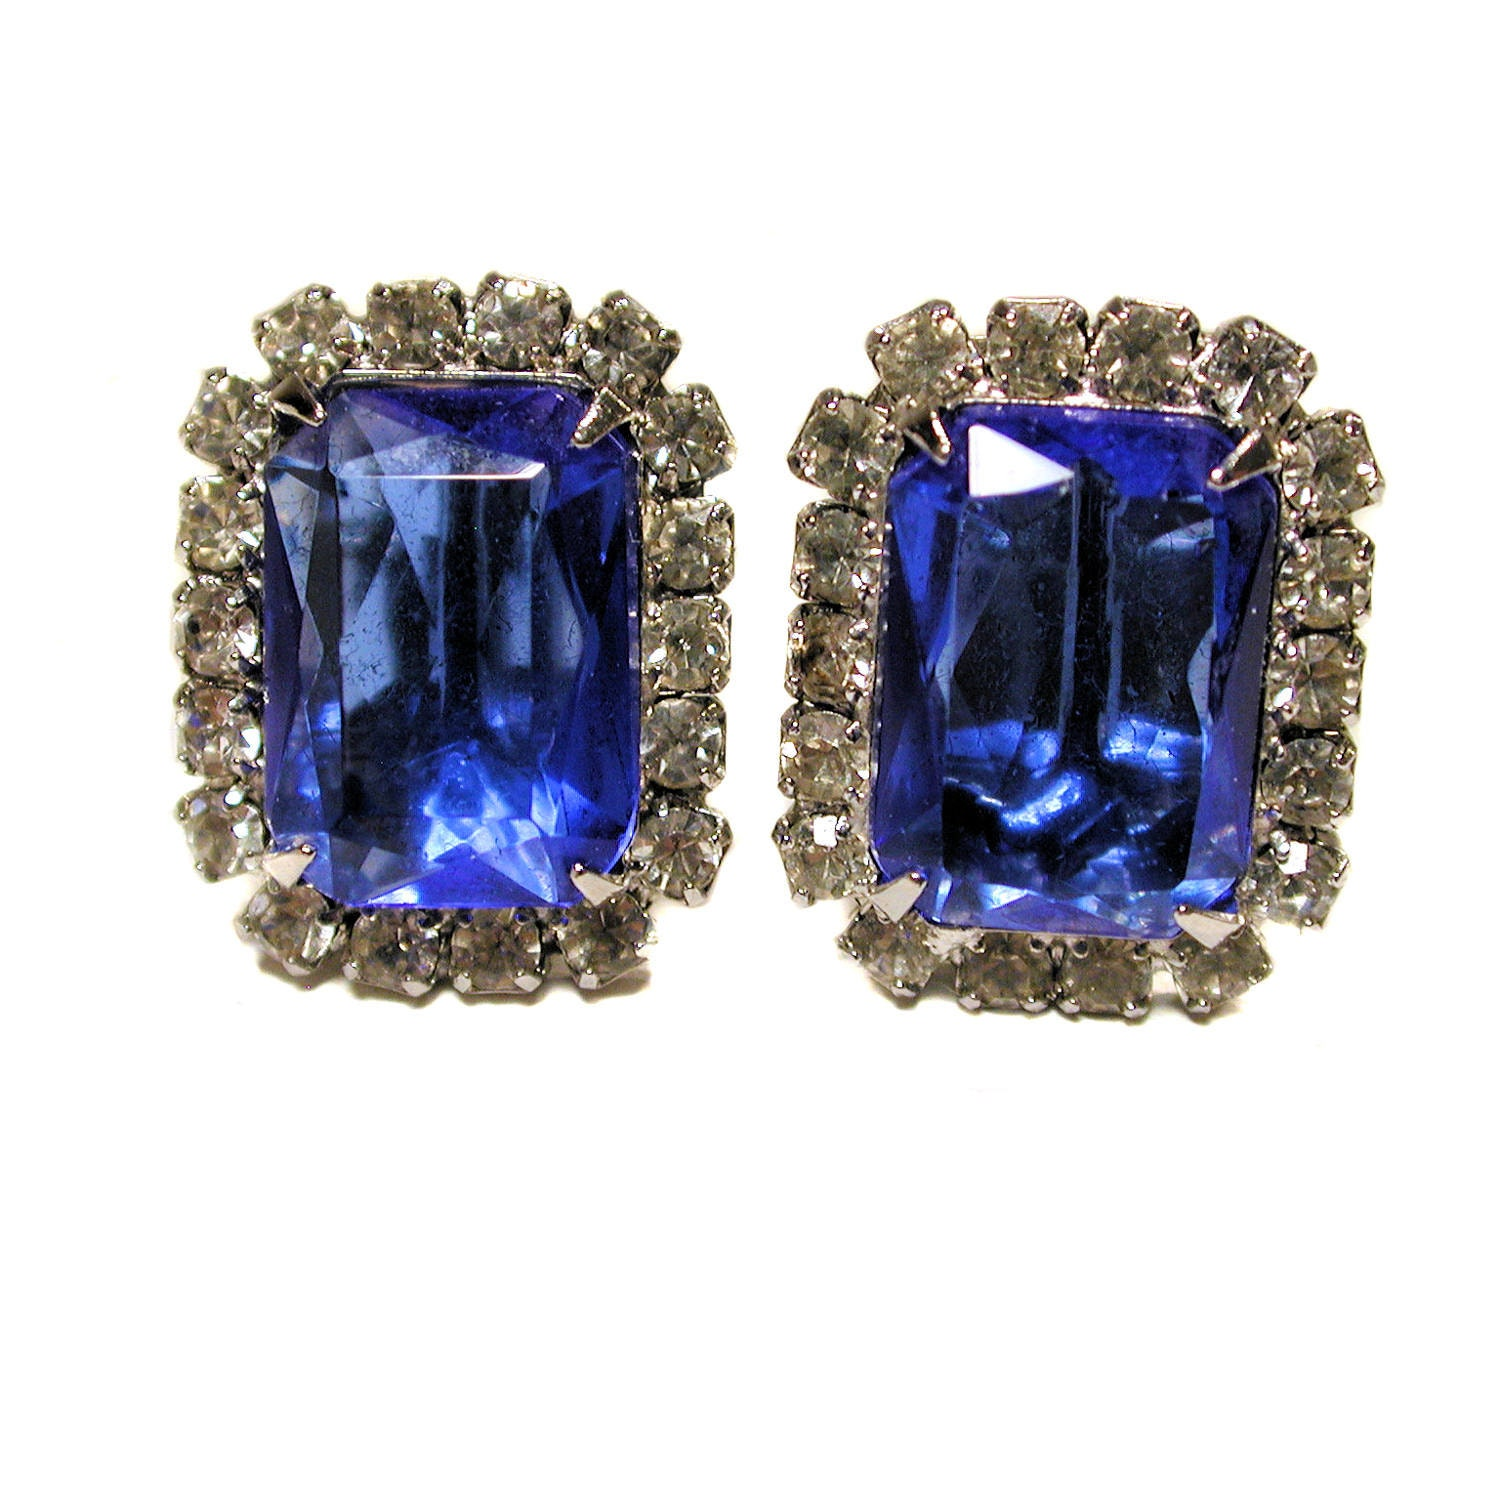 vintage titanic blue earrings sapphire glass by